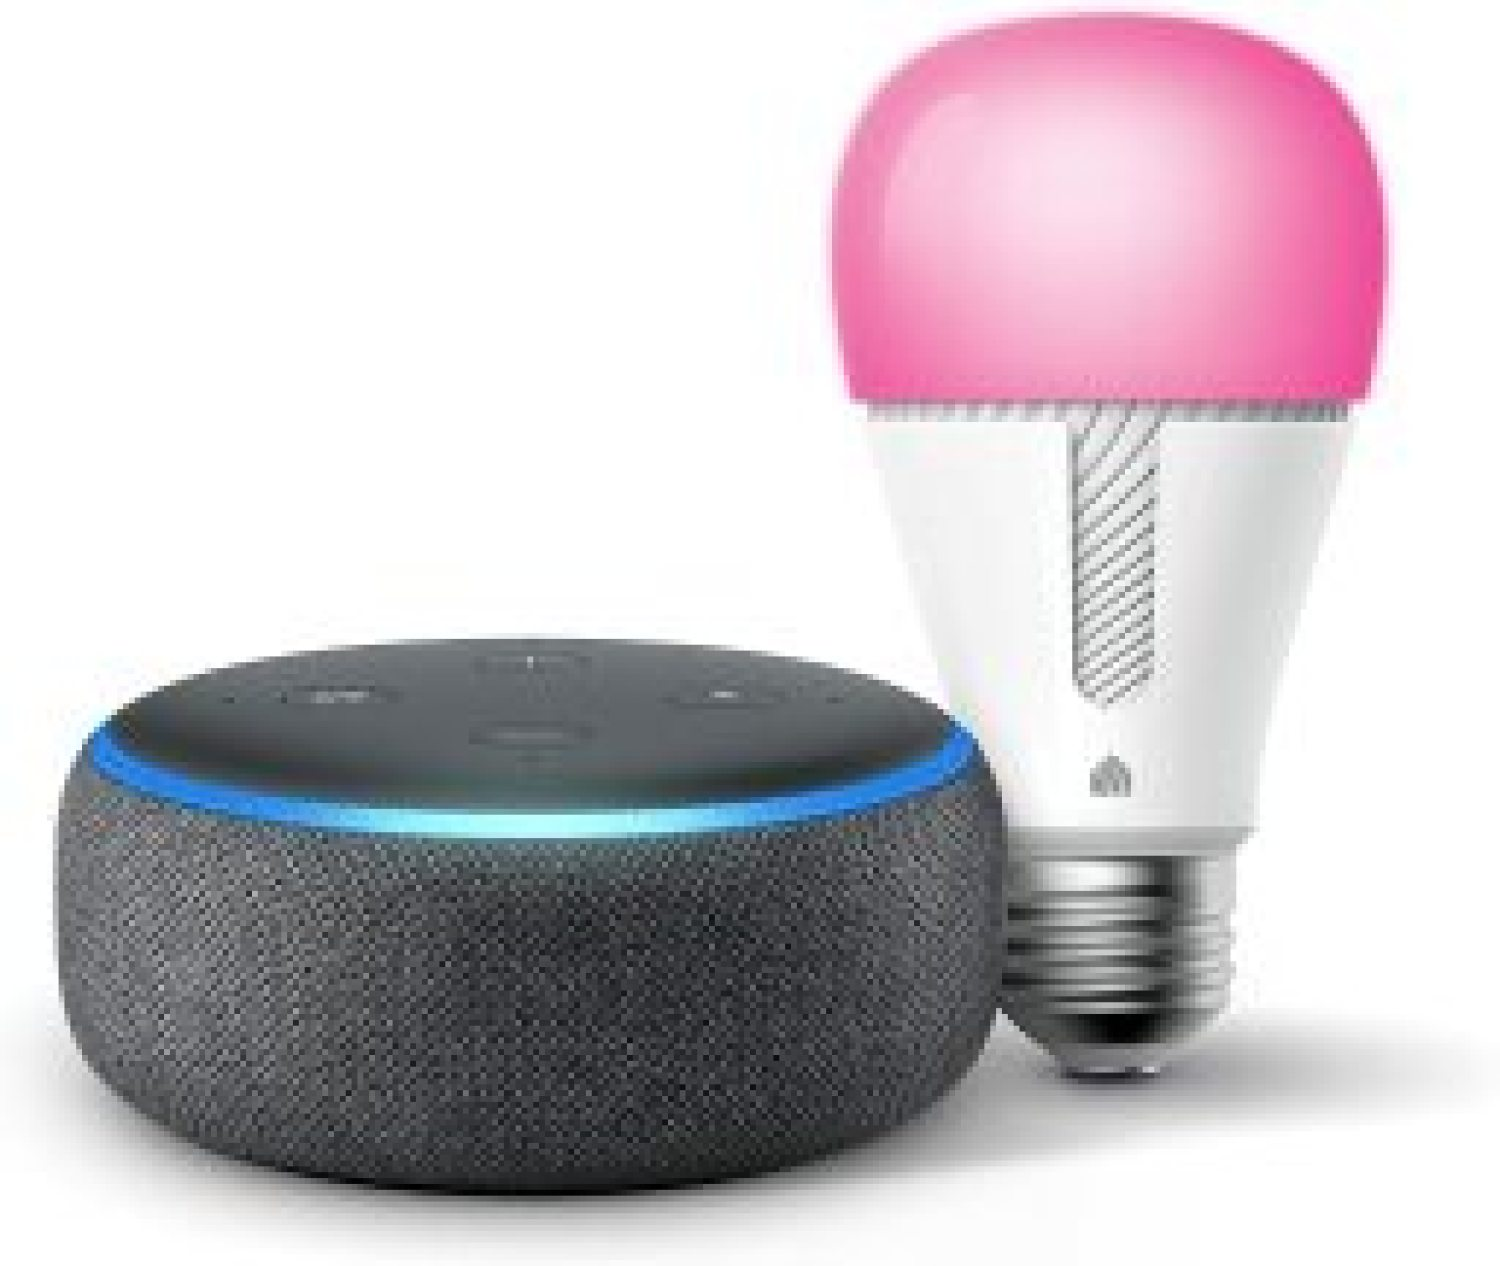 Save $27.99 on the 3rd Gen Echo Dot at Amazon